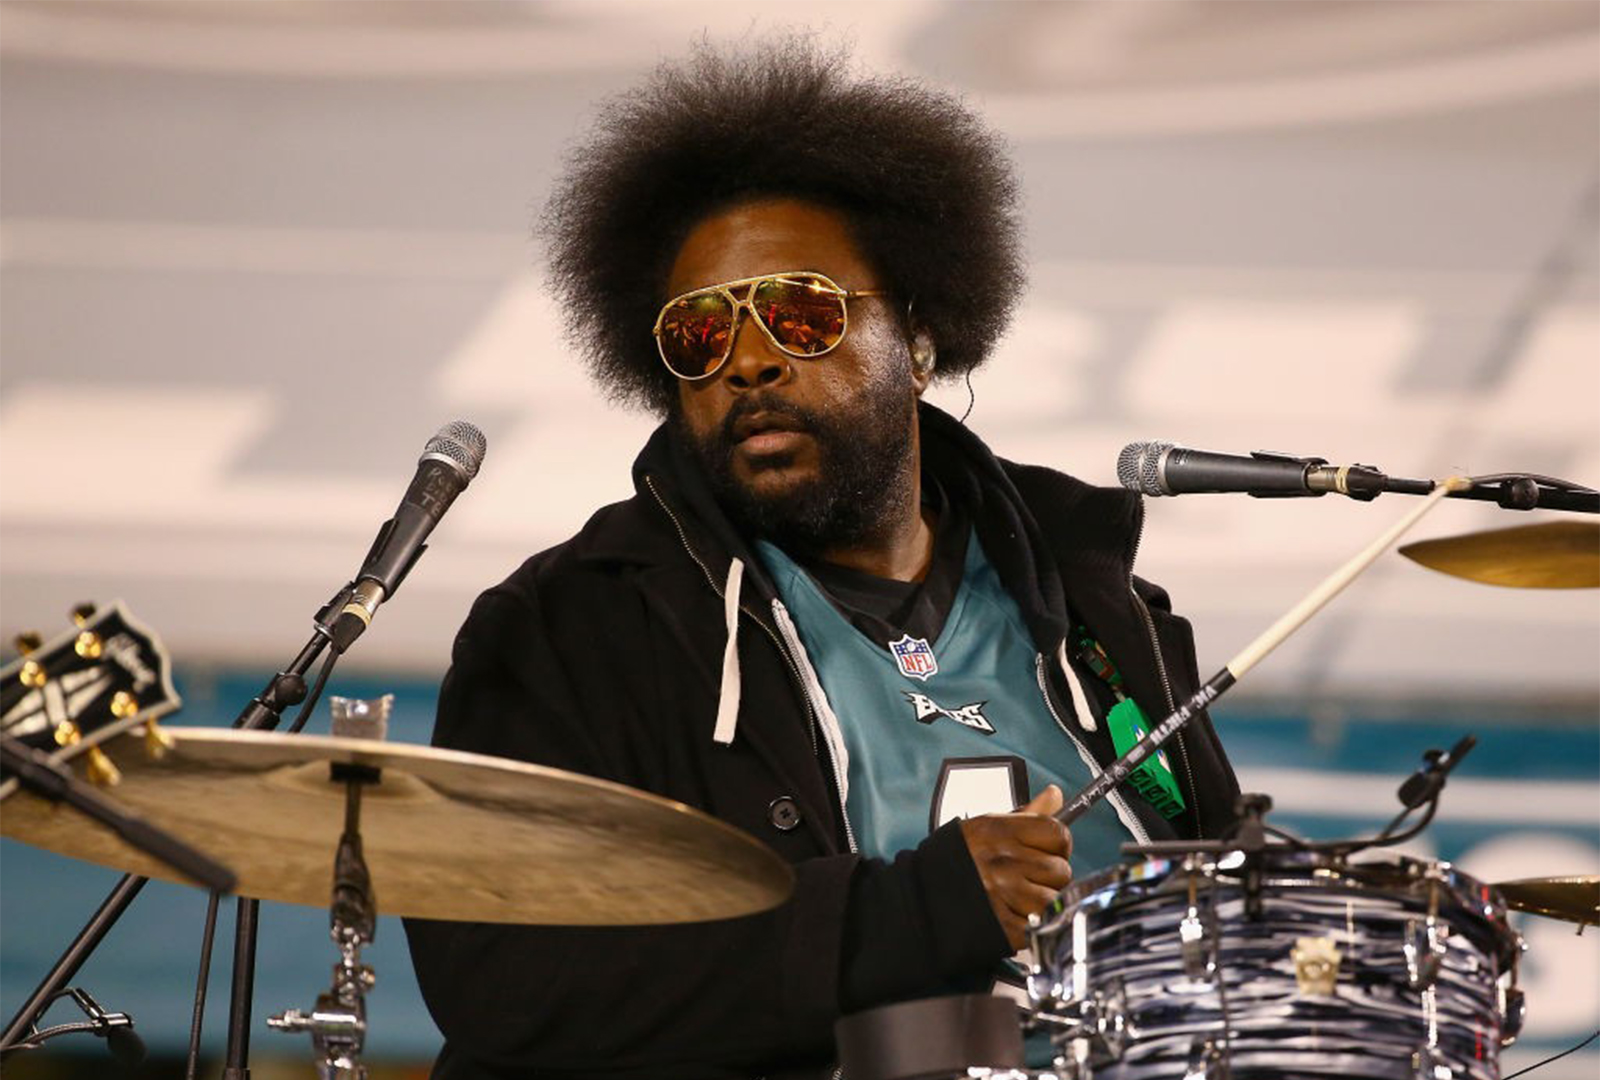 Questlove uses music to uncover American history in new book